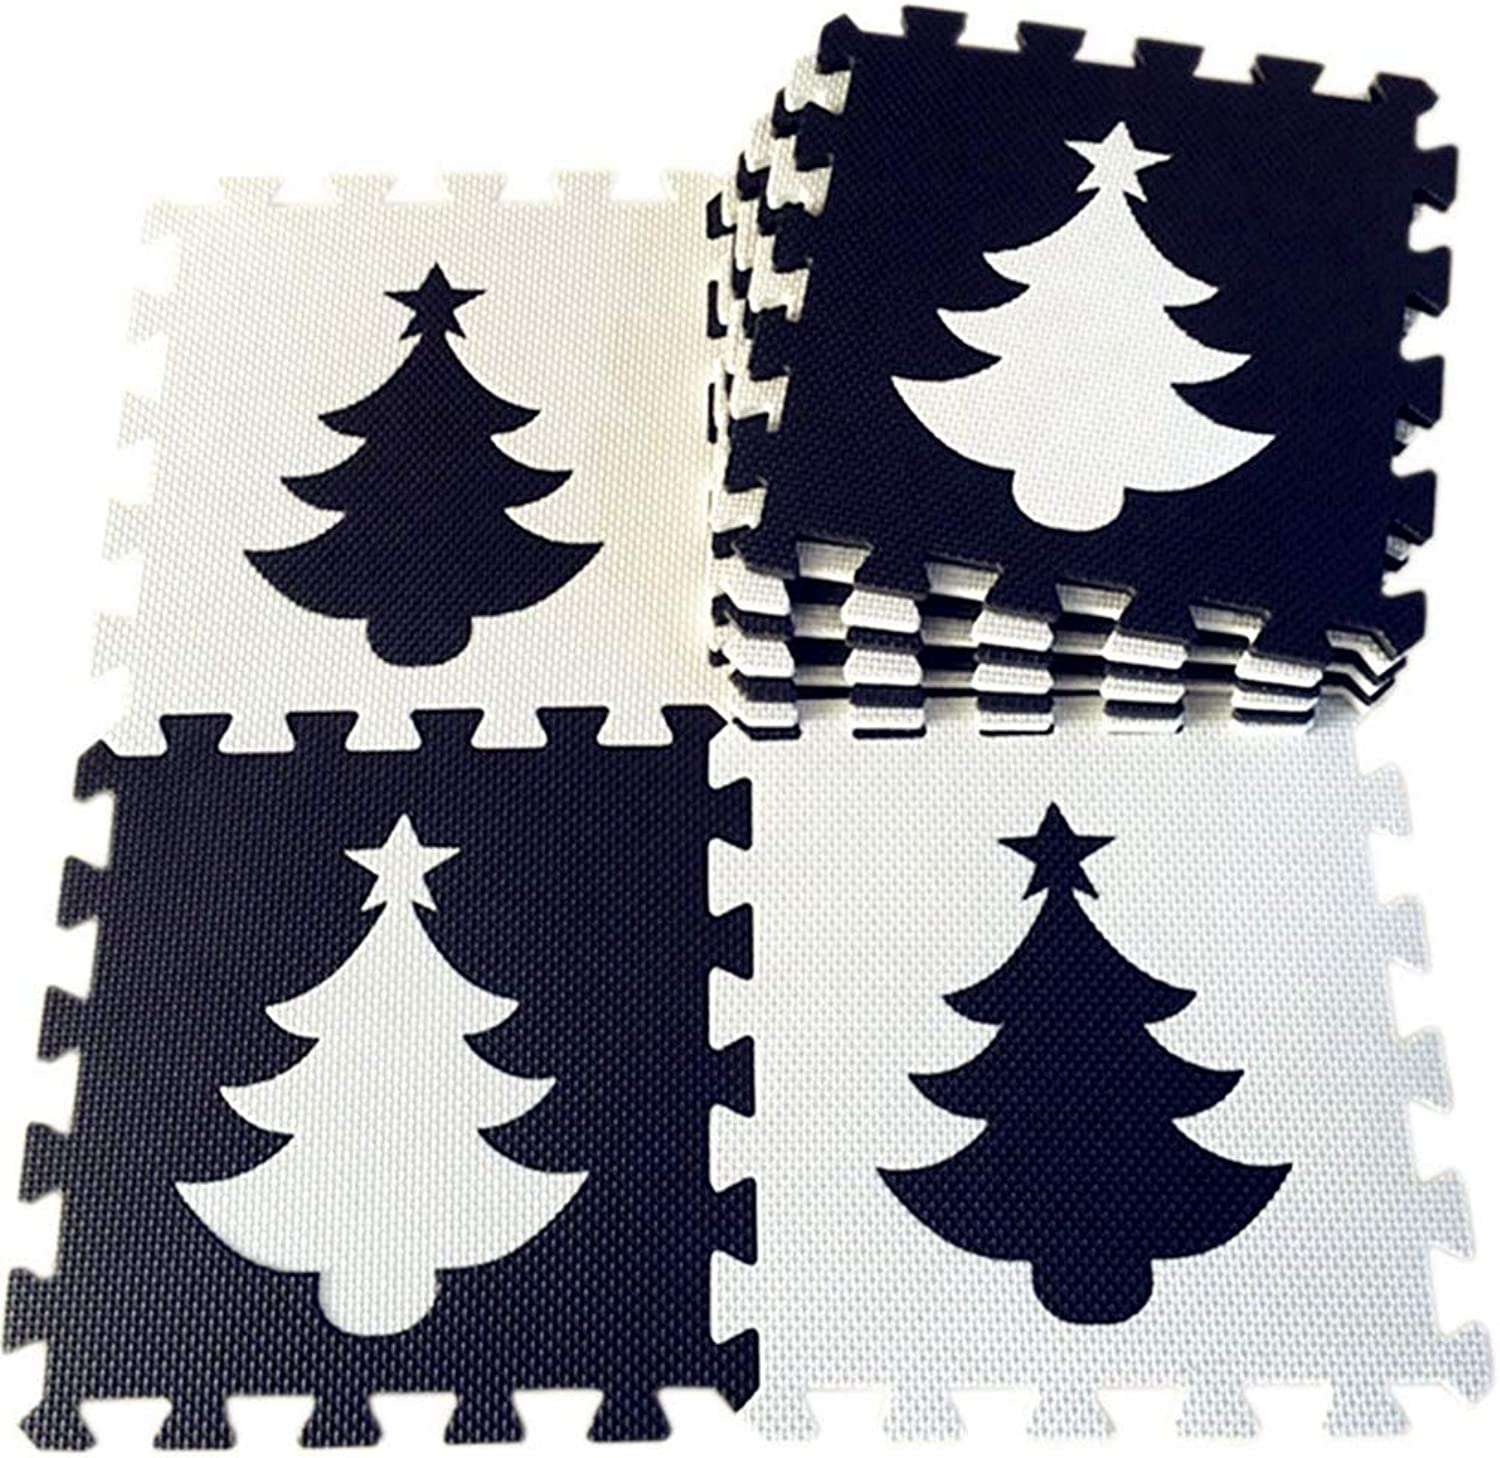 Jim Hugh 25Pcs Baby EVA Foam Play Puzzle Mat Black White Interlocking Floor Carpet Rug pad for Kids. Each Free Edge 32x32cm